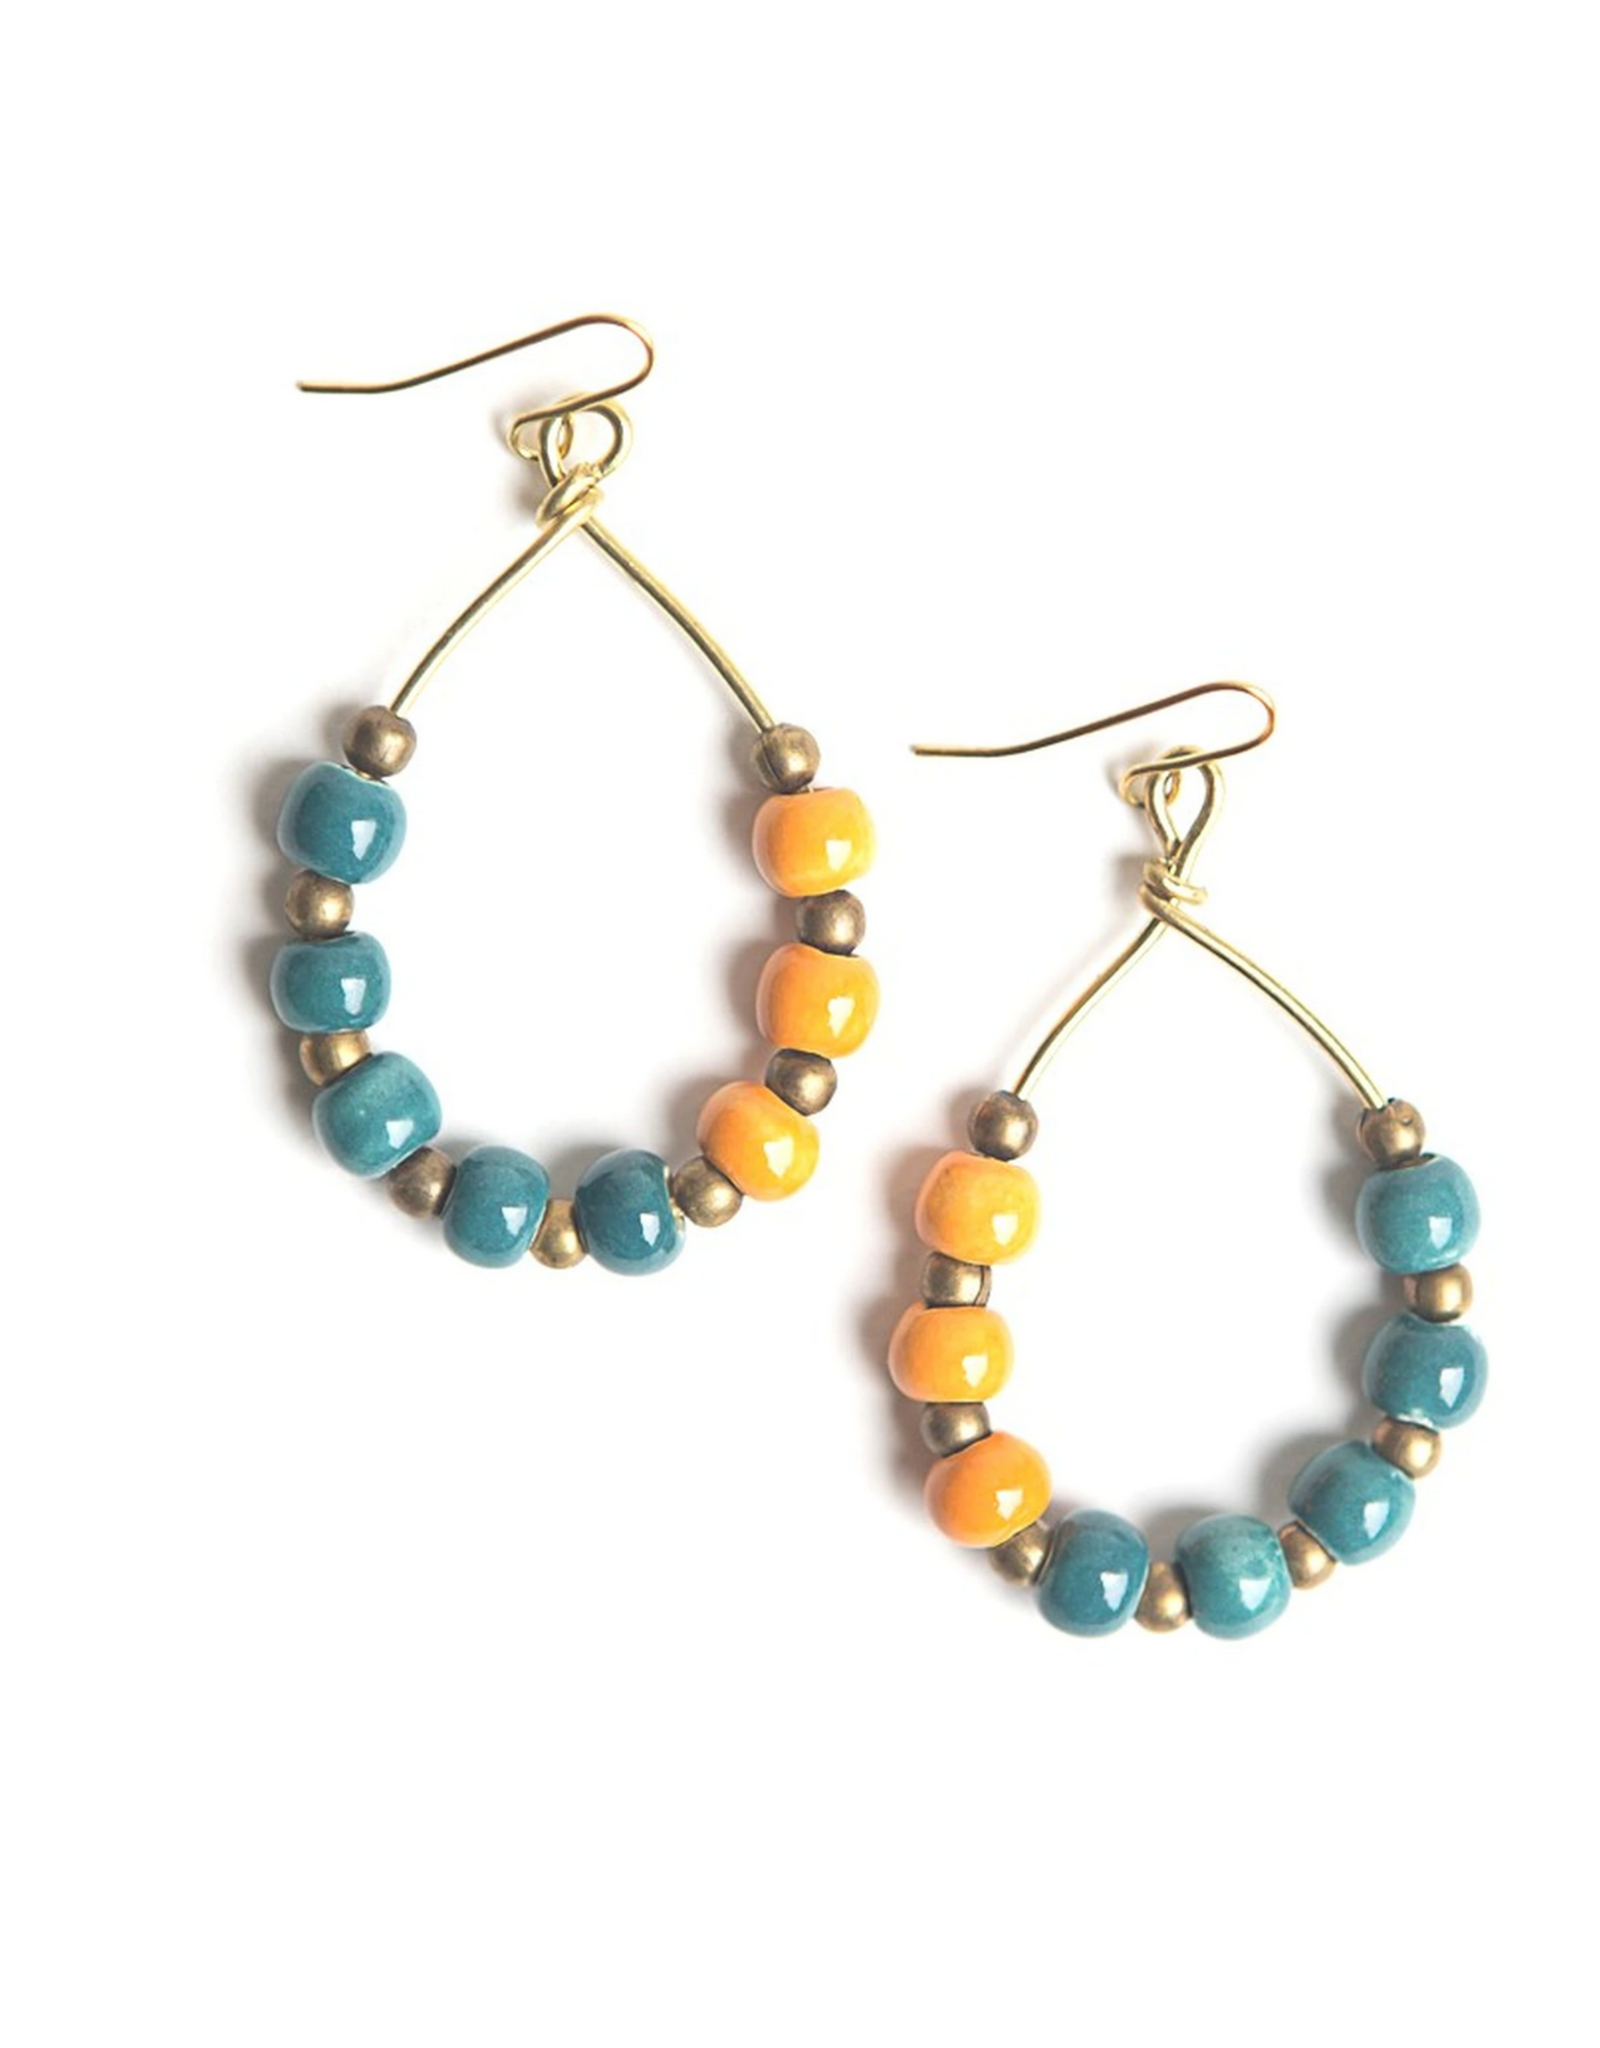 Color Pop Earrings - Teal & Orange